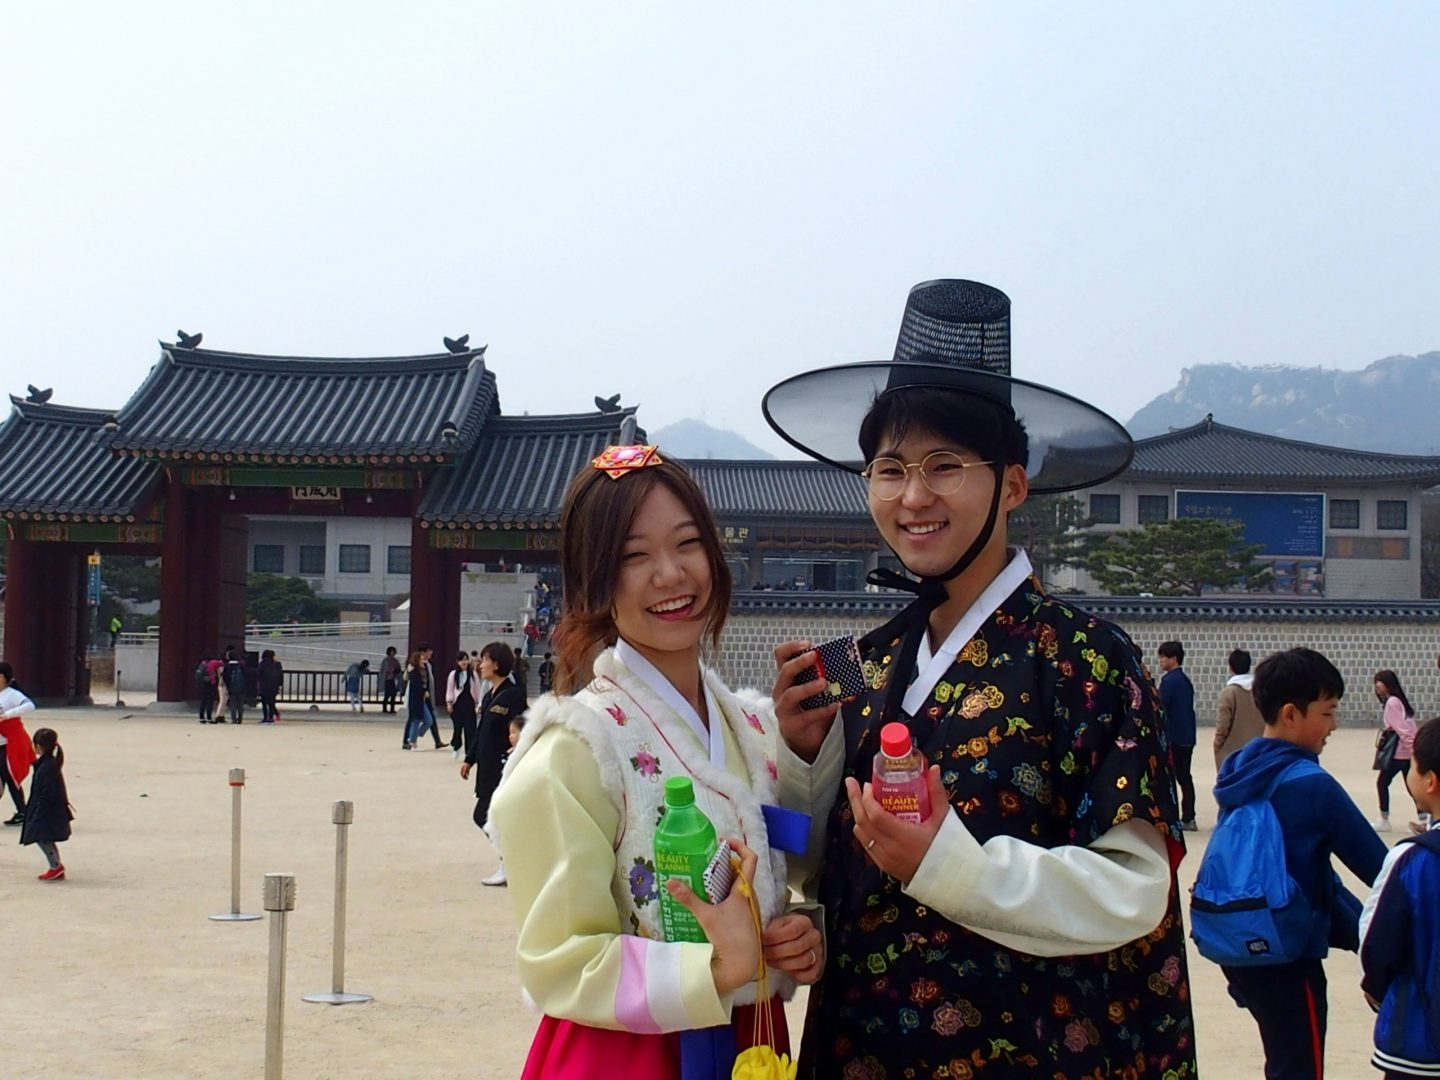 Couple en habit traditionnel Seoul Corée du sud